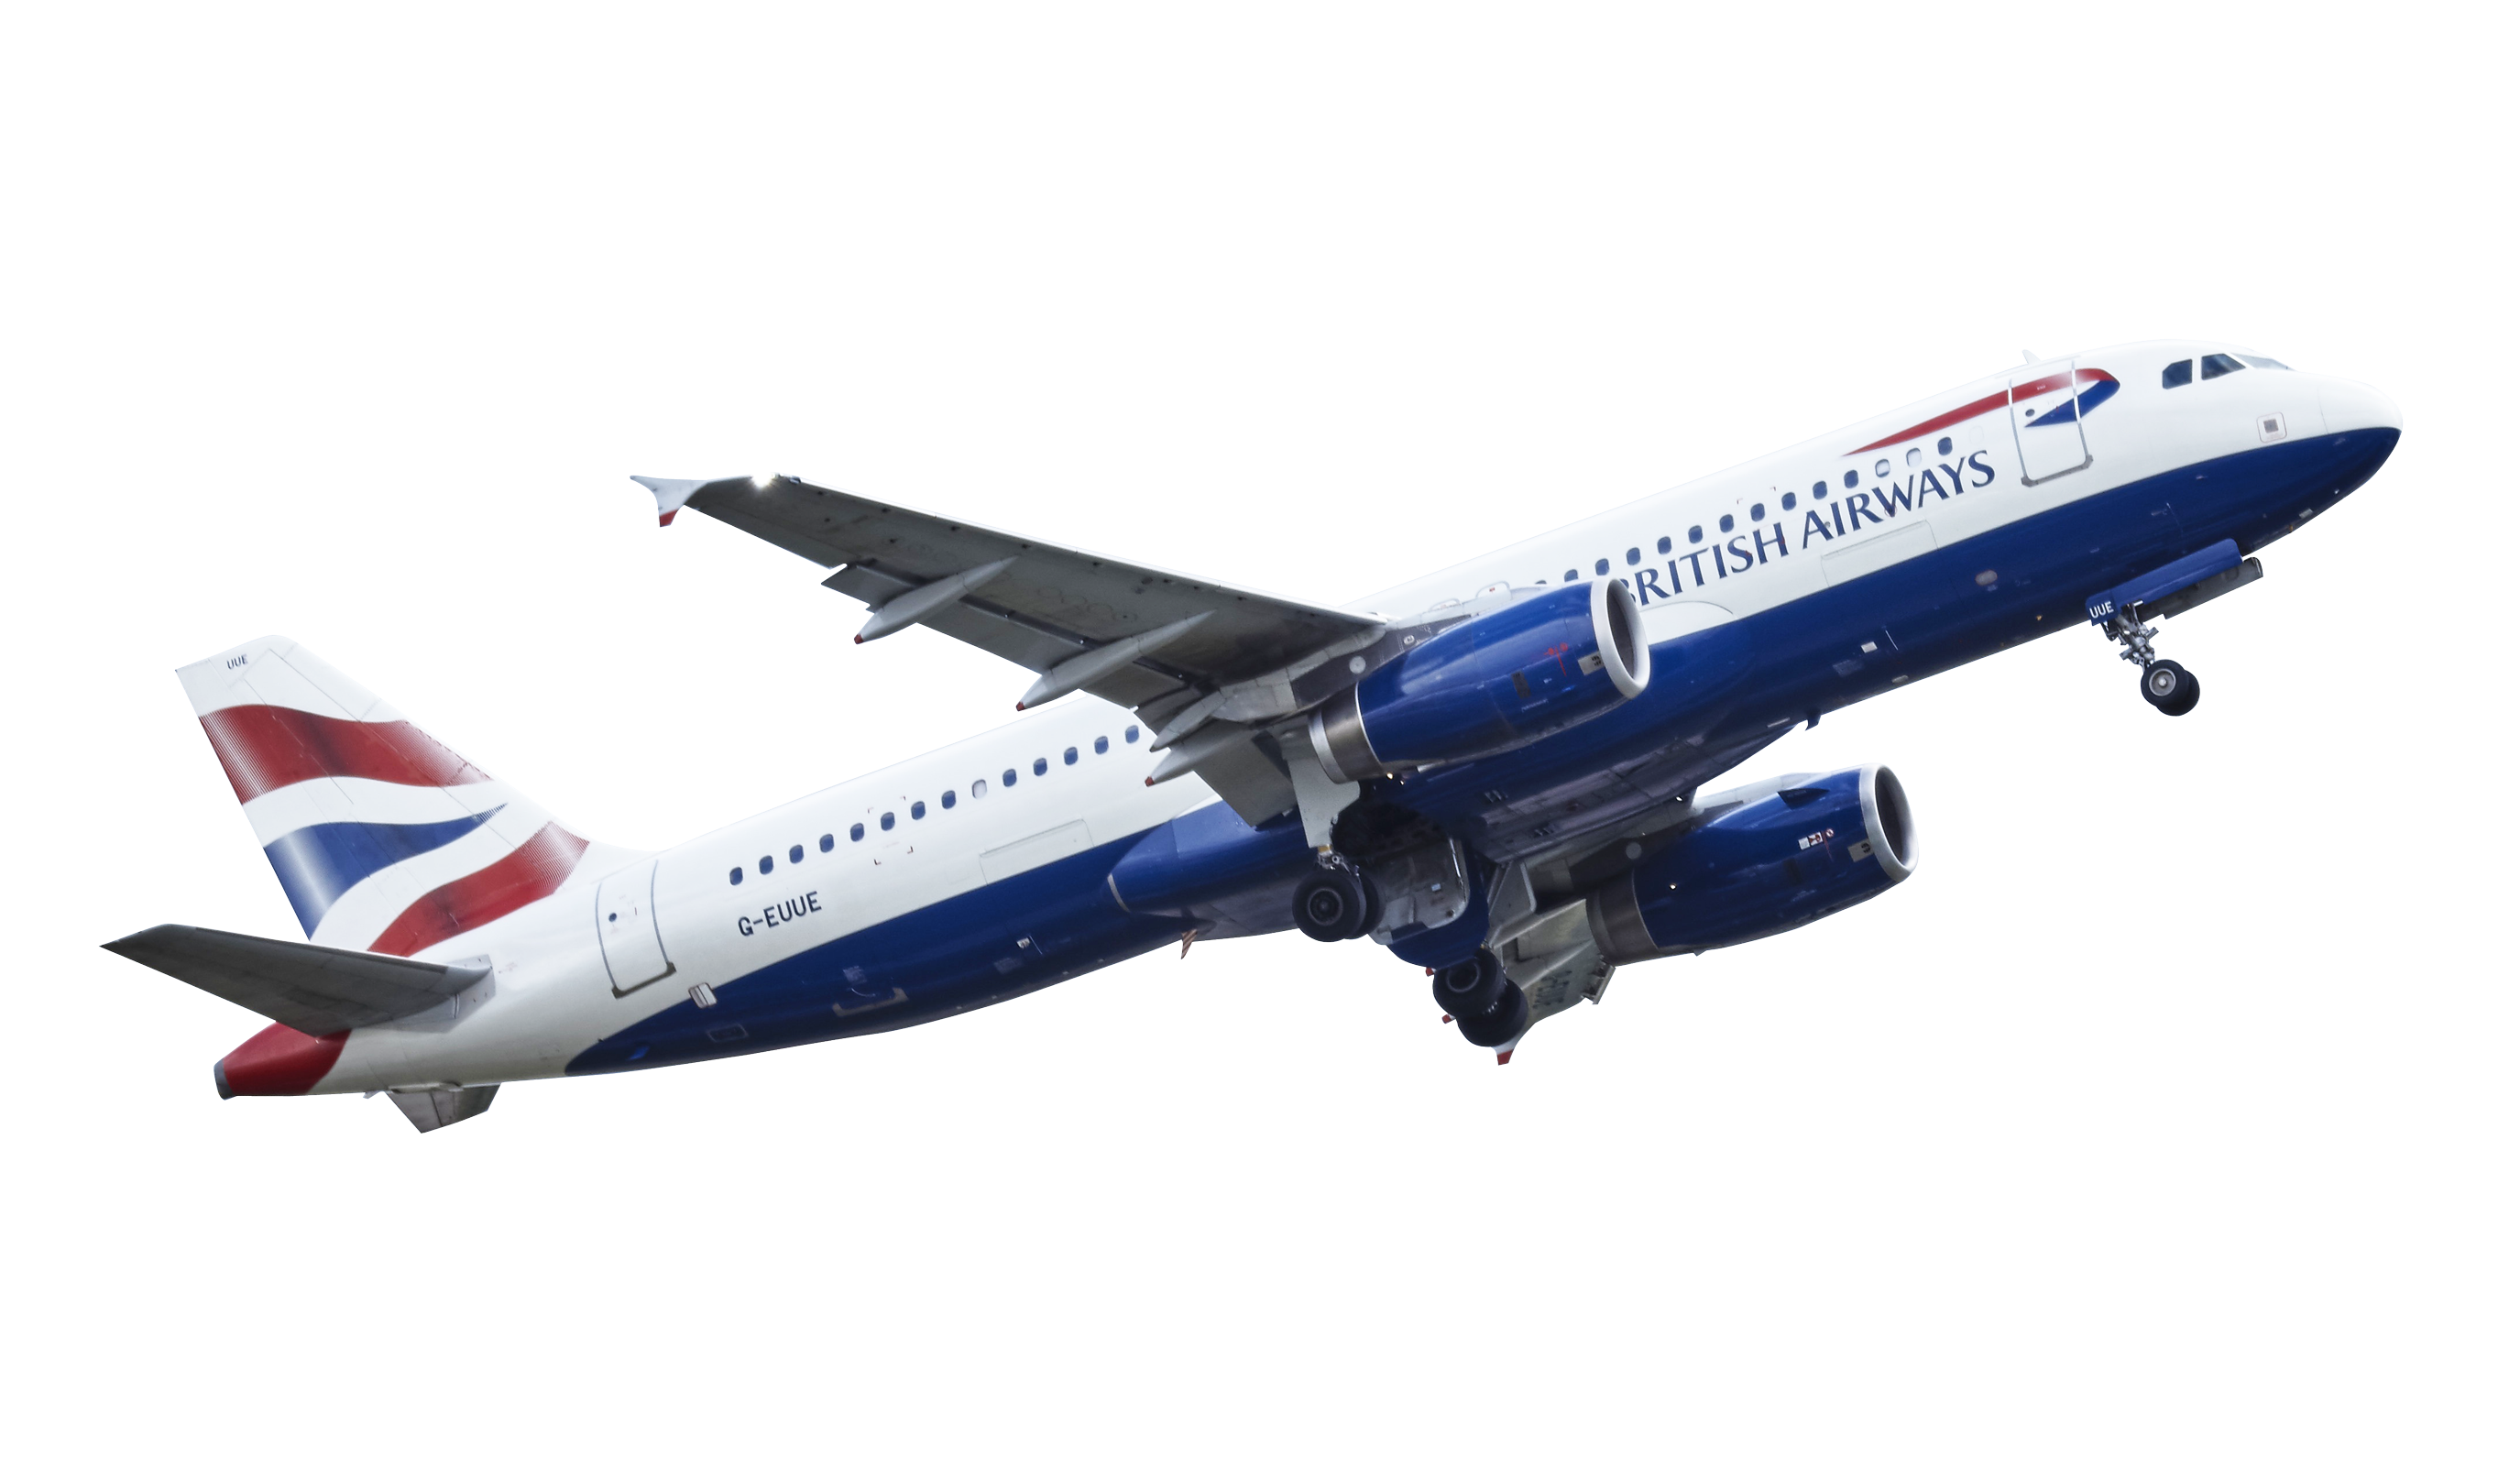 PNG HD Airplane - 148162